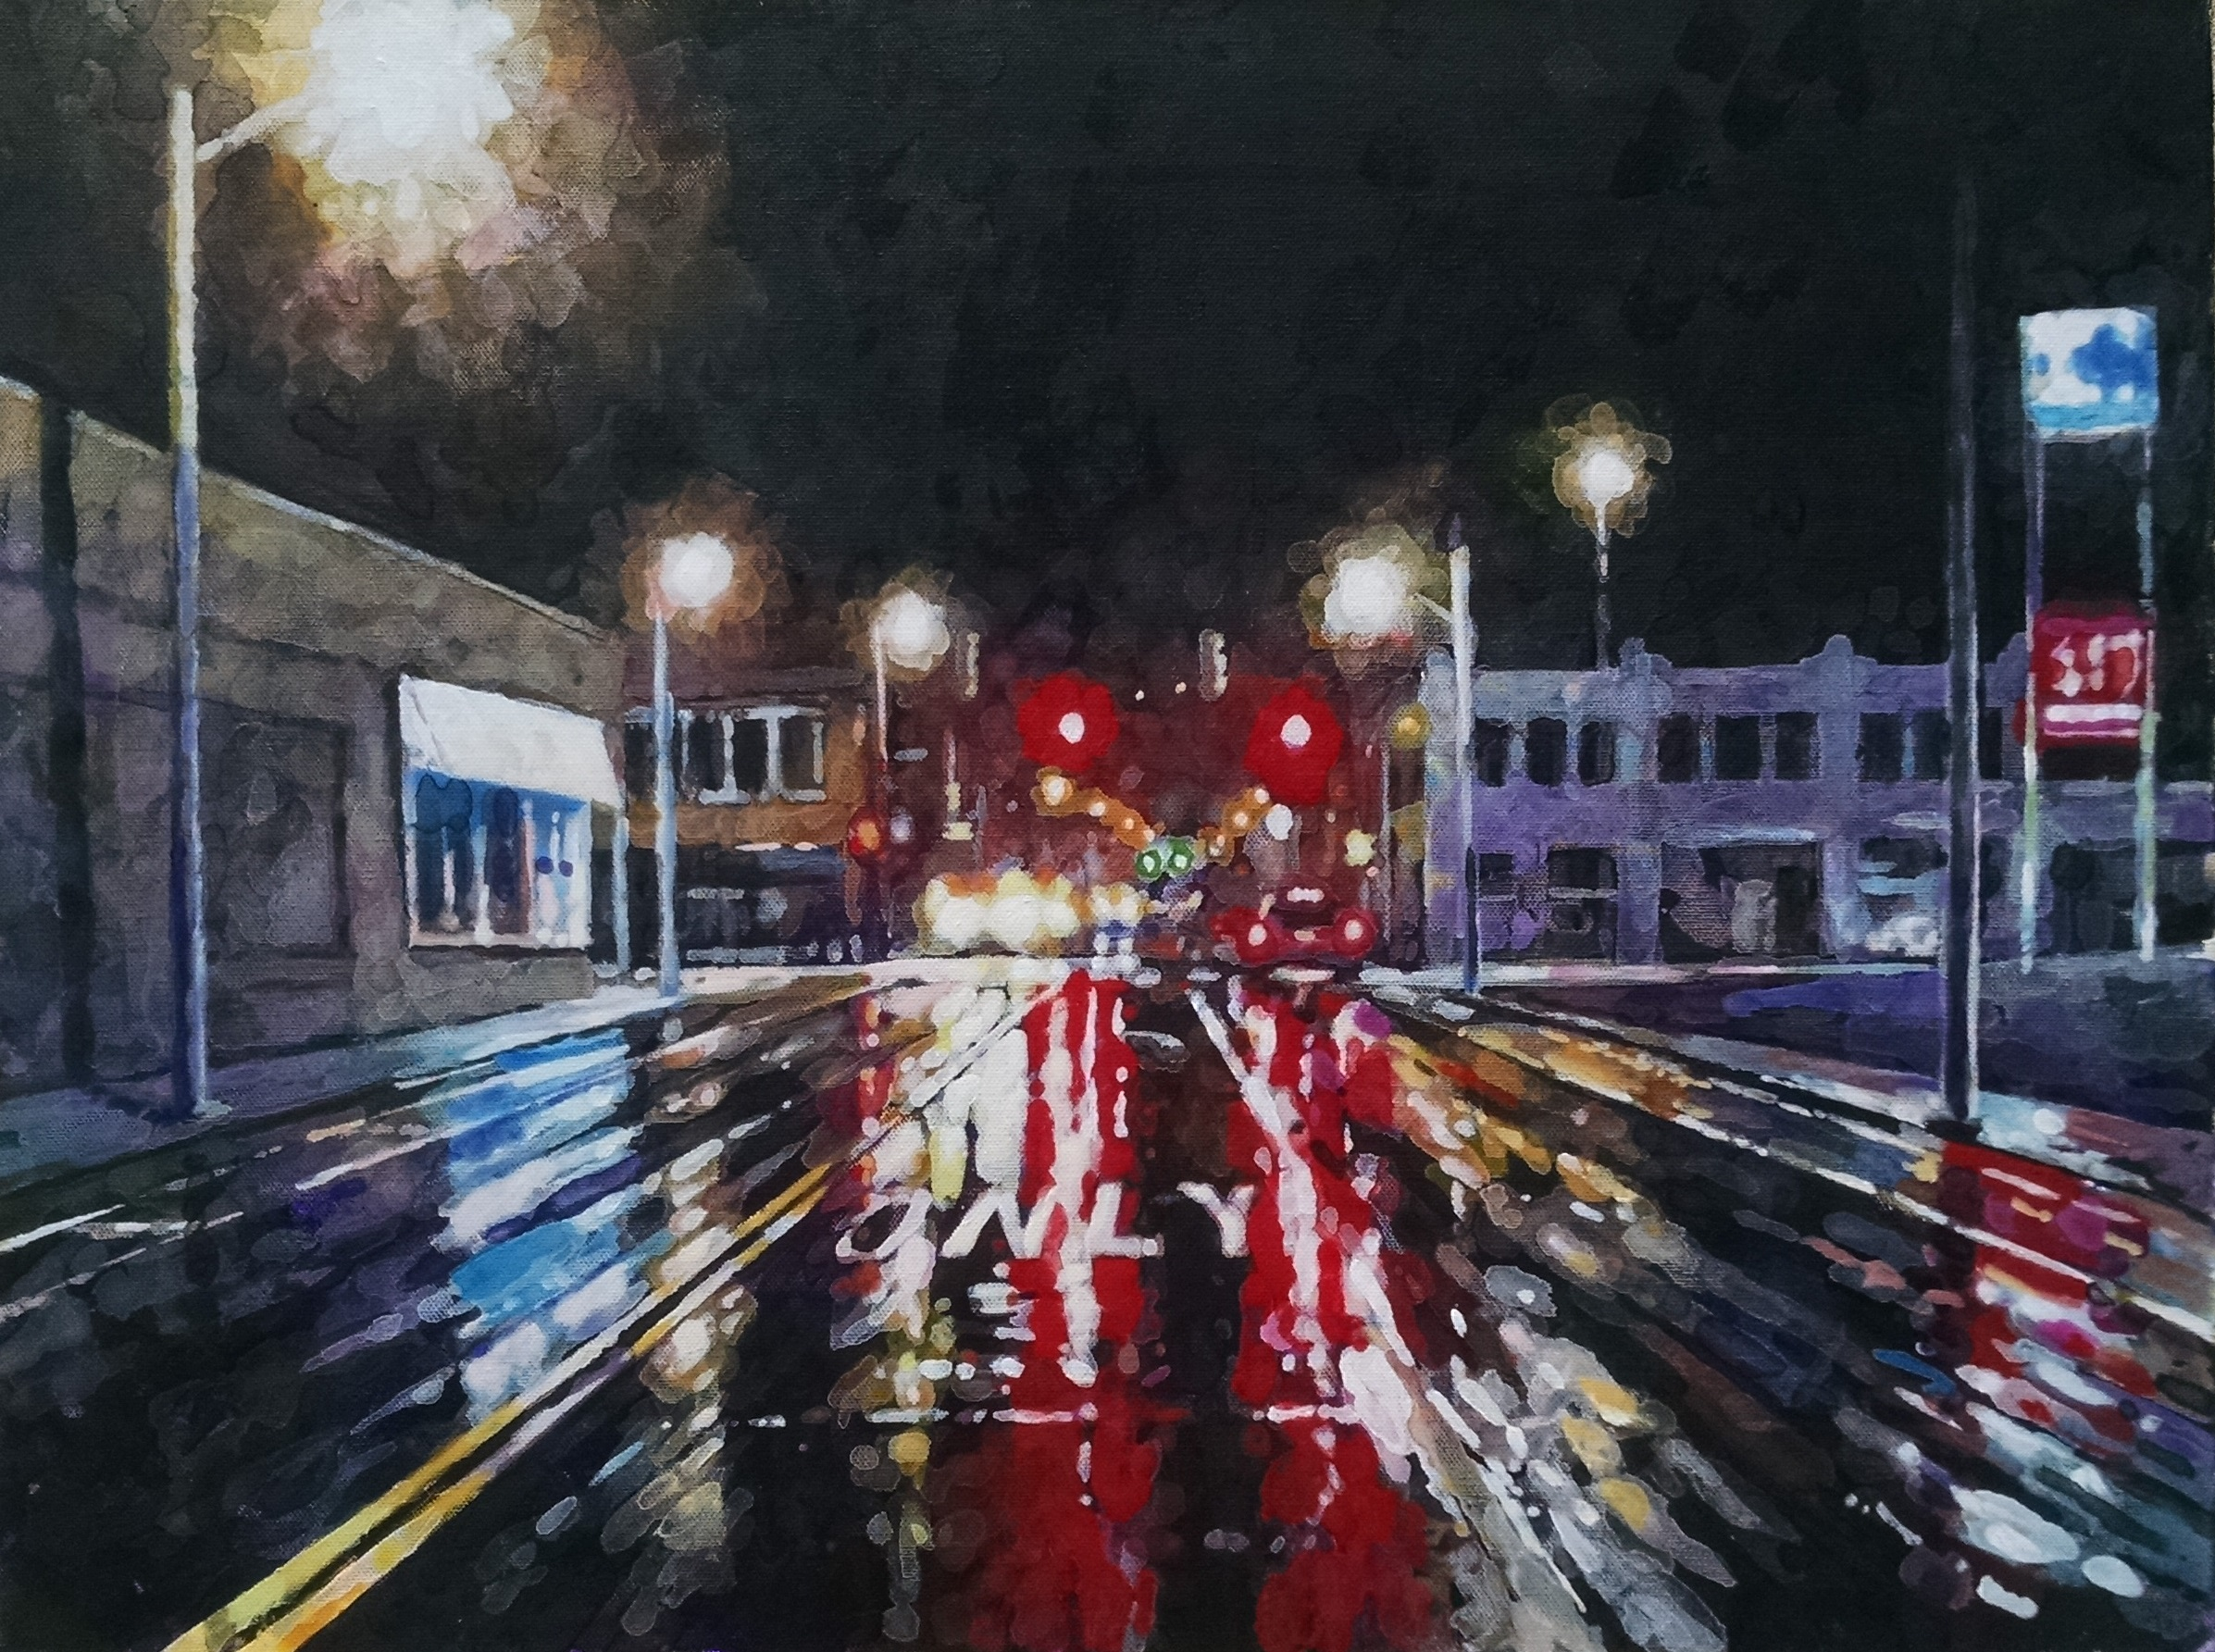 A rainy night in downtown Memphis